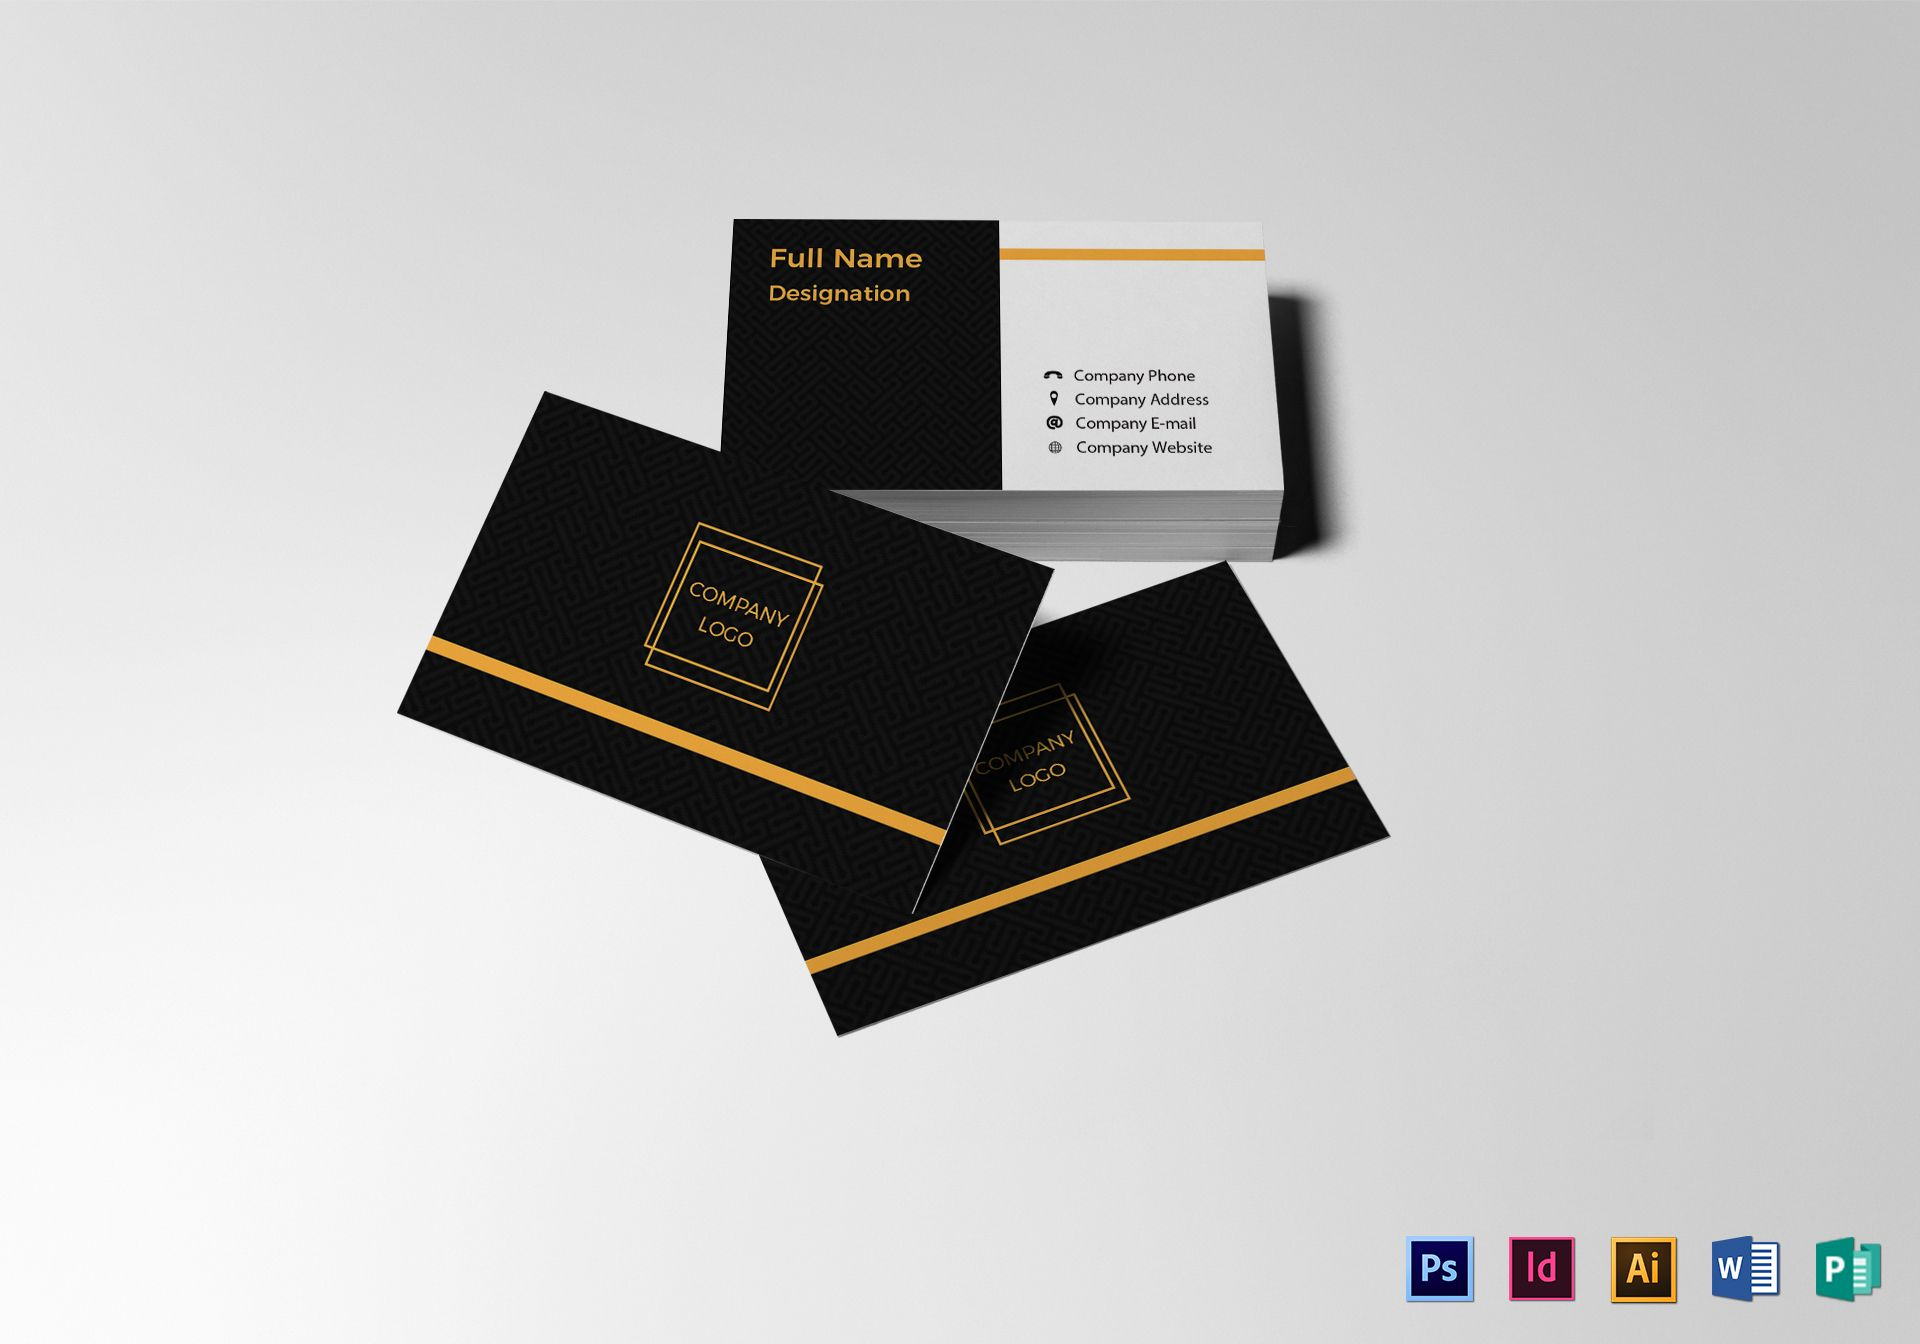 Business Card Design In Photoshop Cs6 Tutorial Learn Photoshop Front In Visitin Business Card Template Photoshop Visiting Card Templates Business Card Design